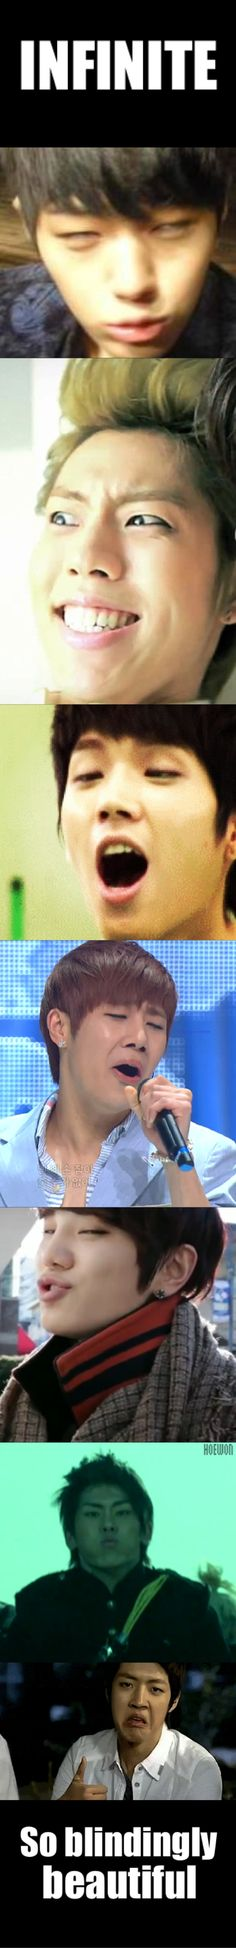 So blindingly beautiful! Haha. Even when they make derp faces, I still love them.